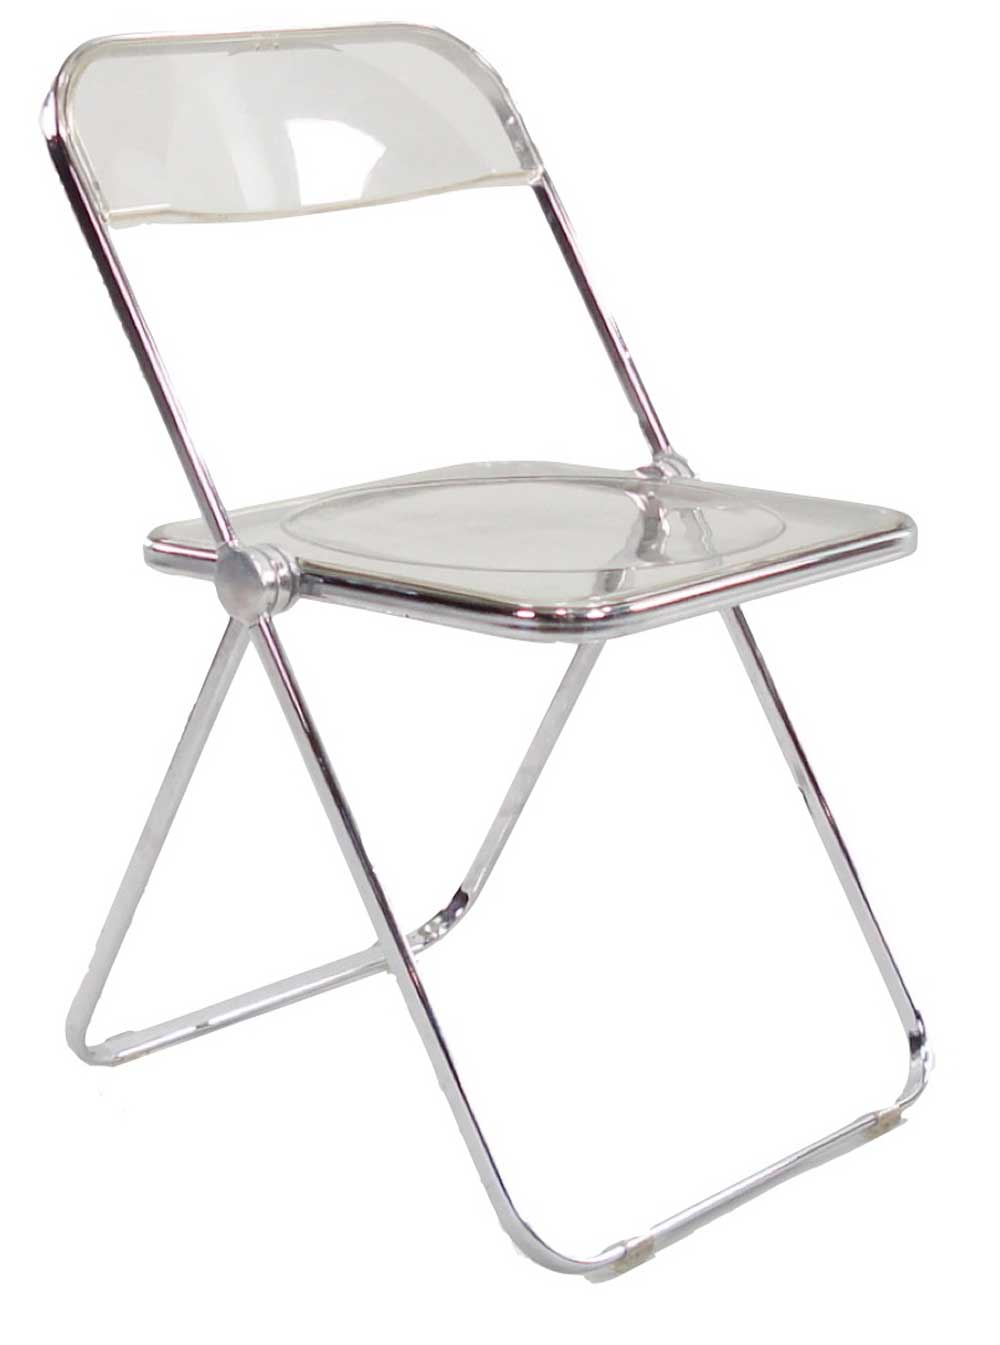 Anonima Castelli Contemporary Lucite folding chairs